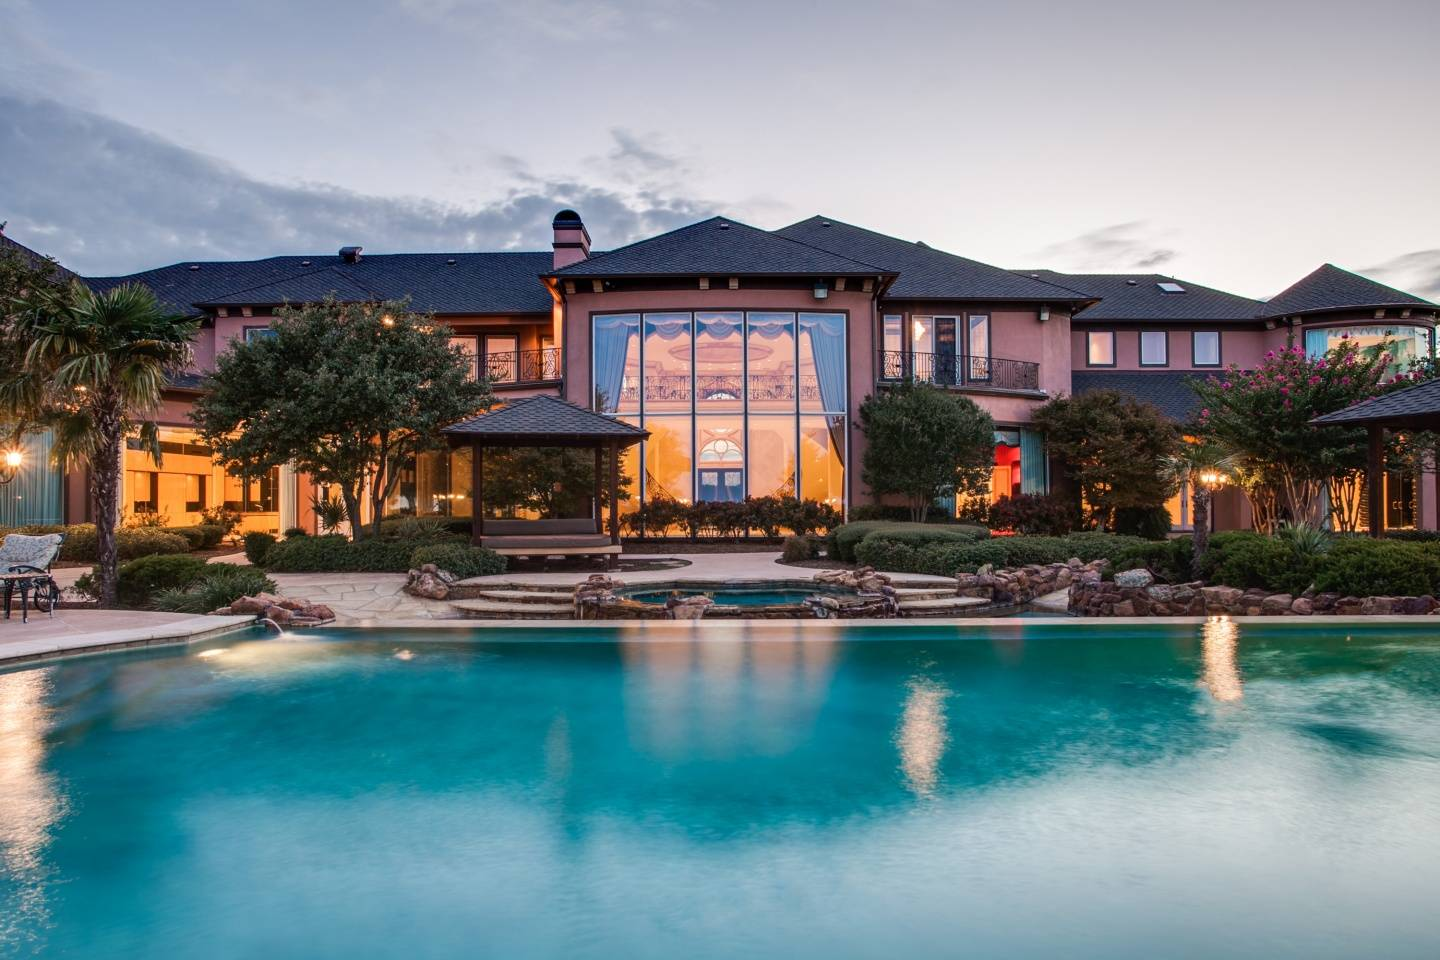 Prime Time Deion's Dallas Mansion